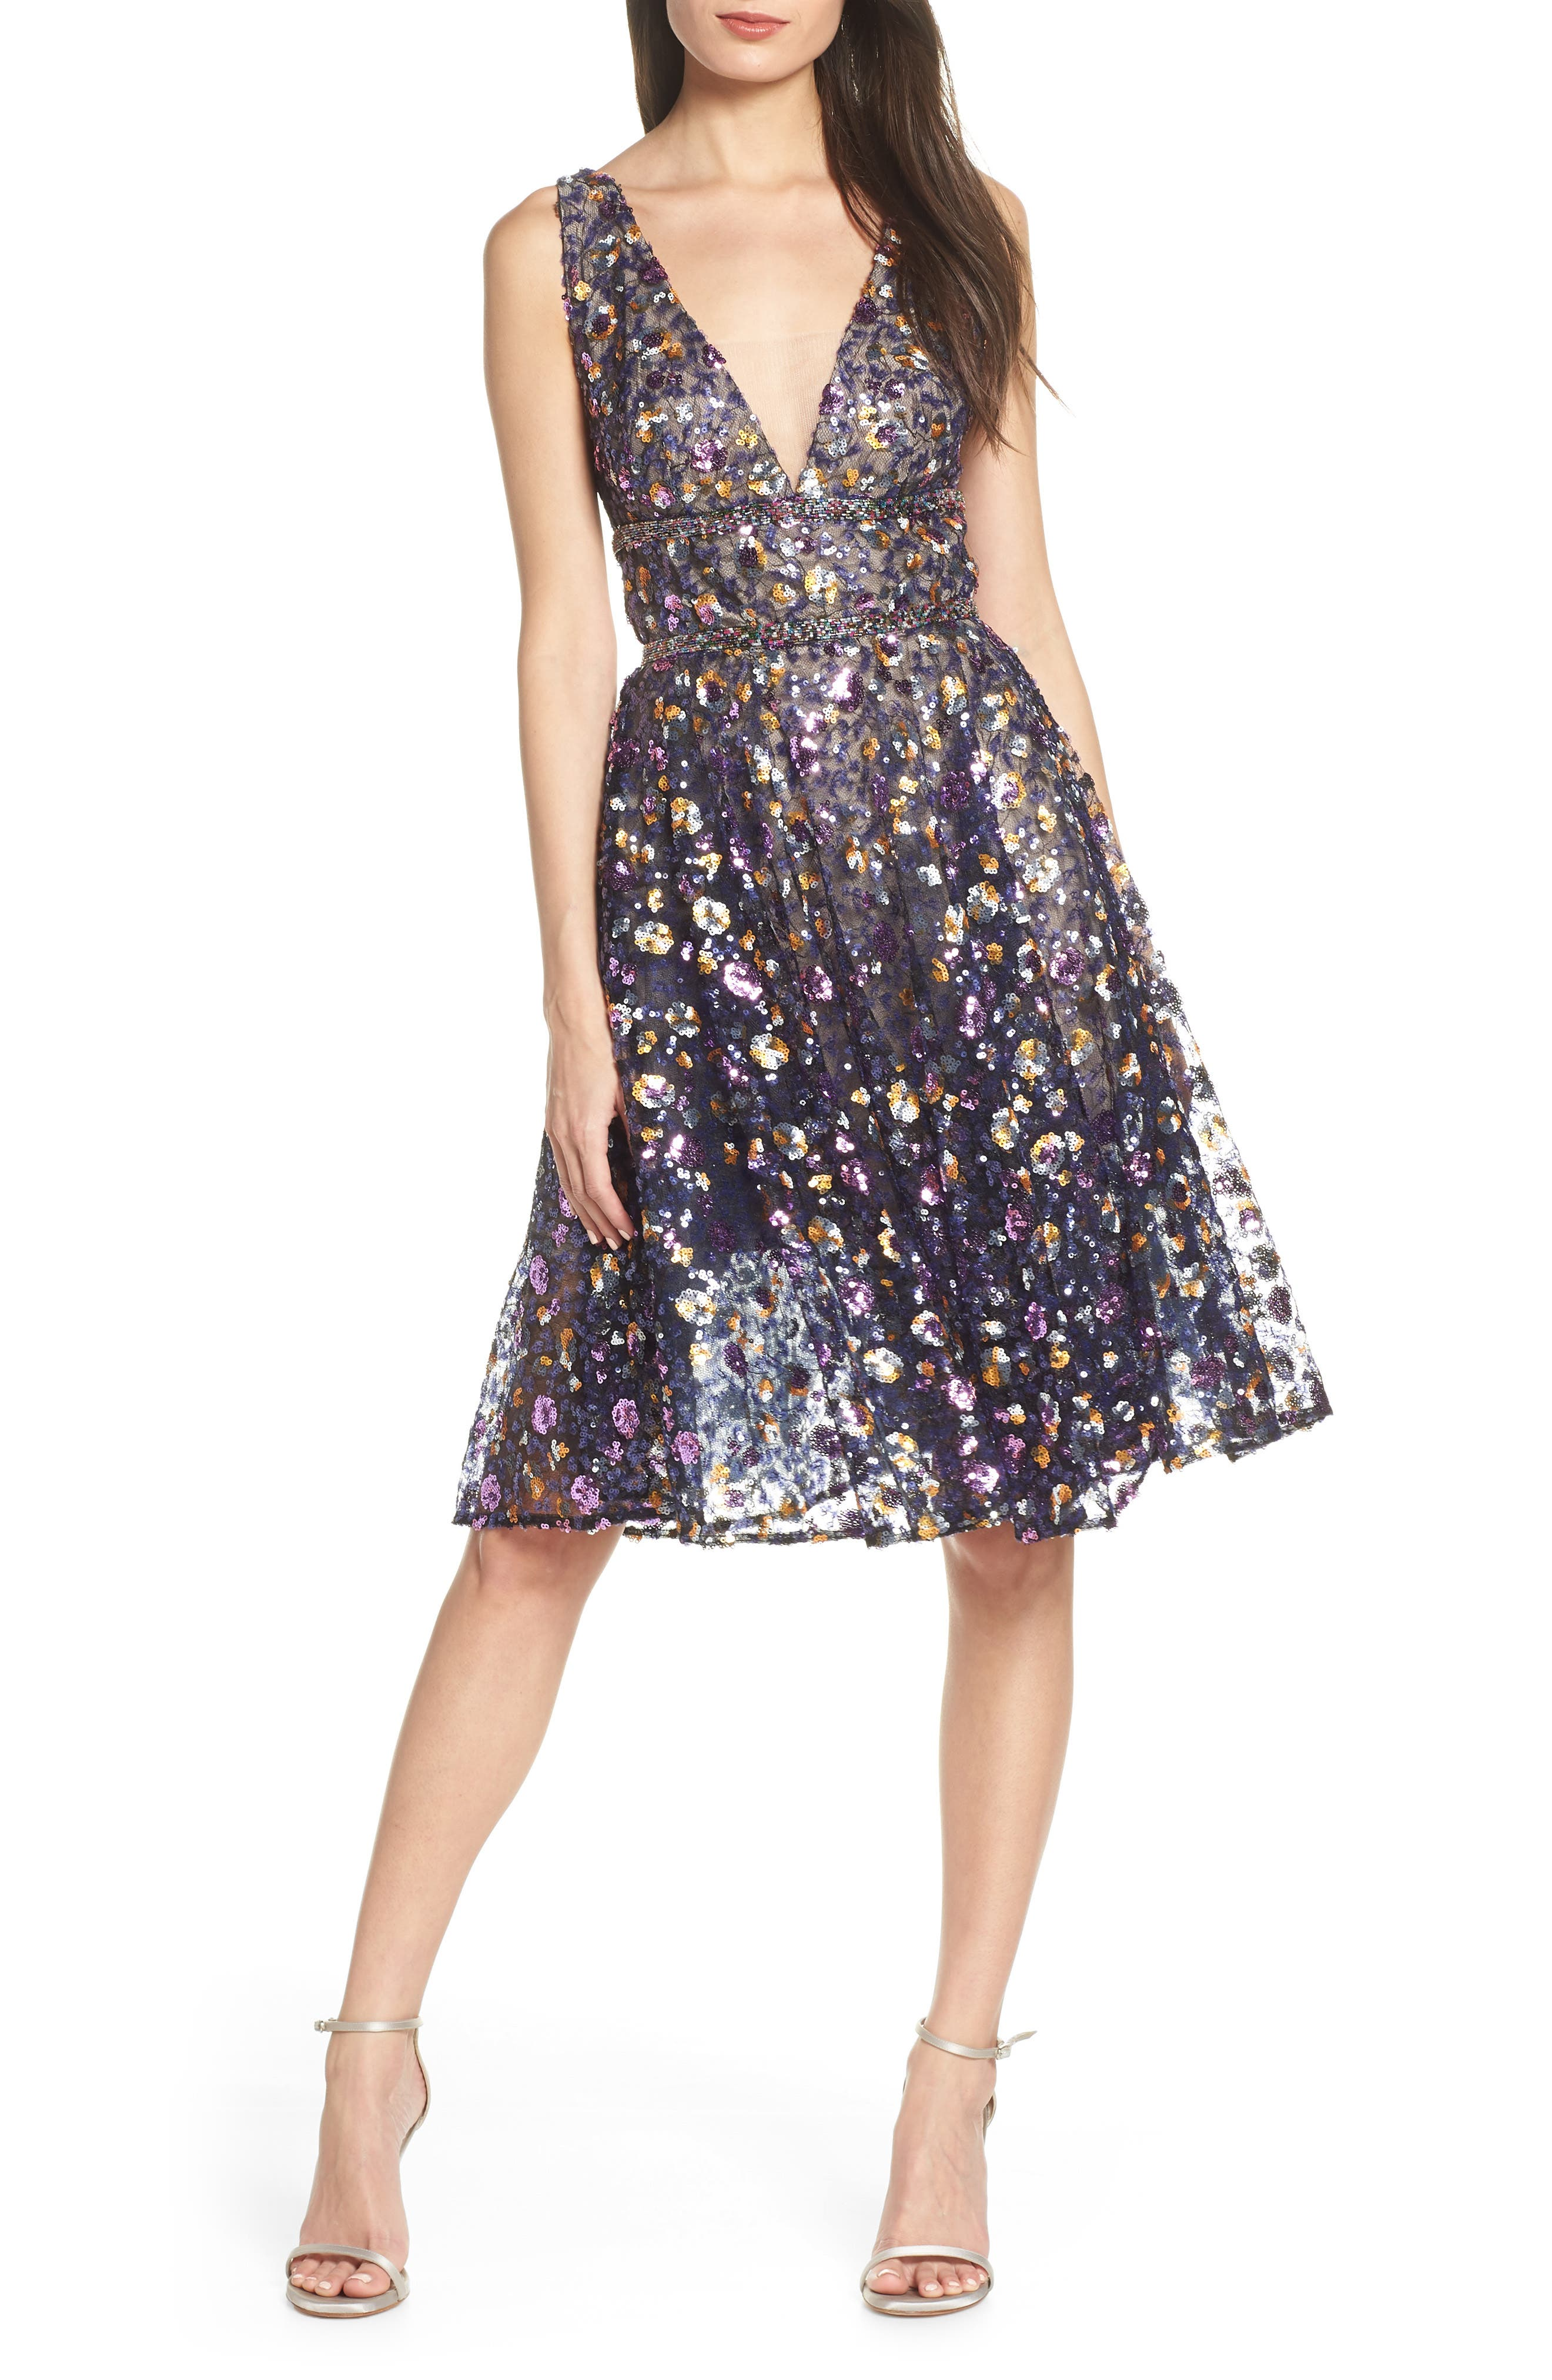 BRONX AND BANCO Sequin Fit & Flare Dress, Main, color, MULTICOLOR